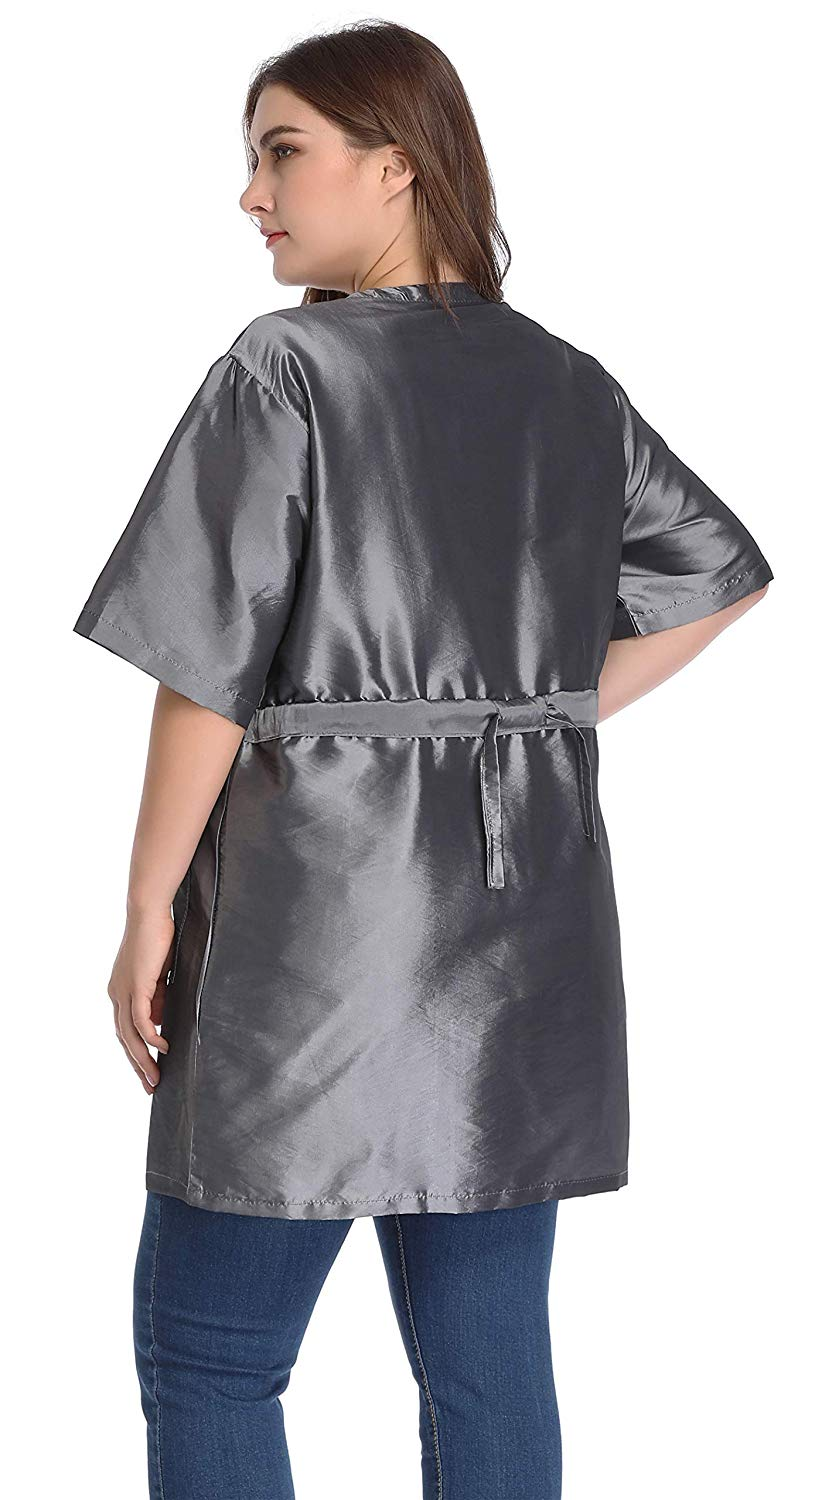 Hair Stylist Grooming Smocks for Women, Barber Apron Jacket Vest for Hair Salon